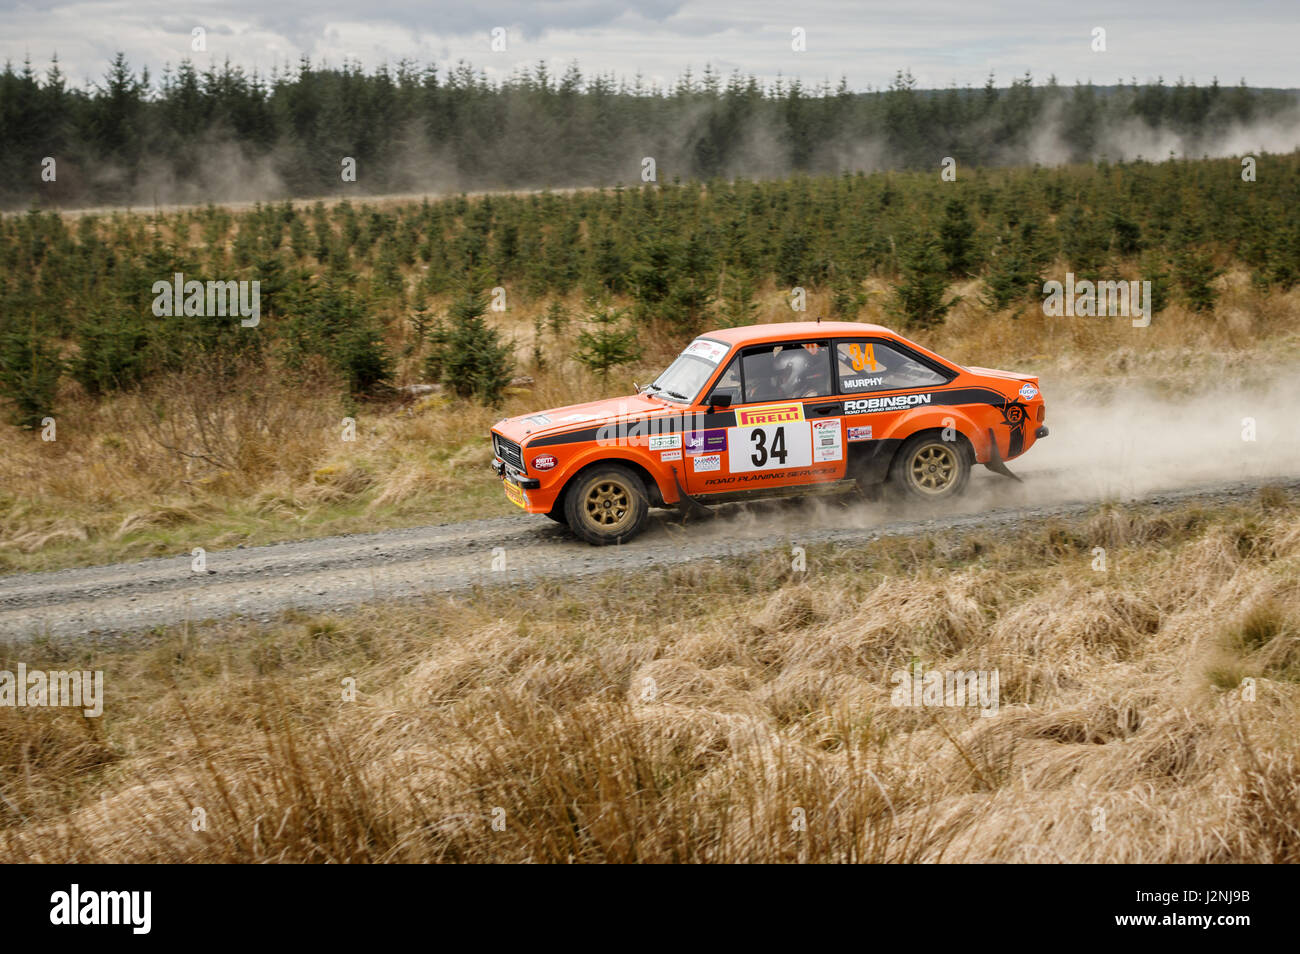 Wark, UK - 29th April, 2017: Rally car taking part in the Pirelli International Rally 2017 (Historic Section).  - Stock Image